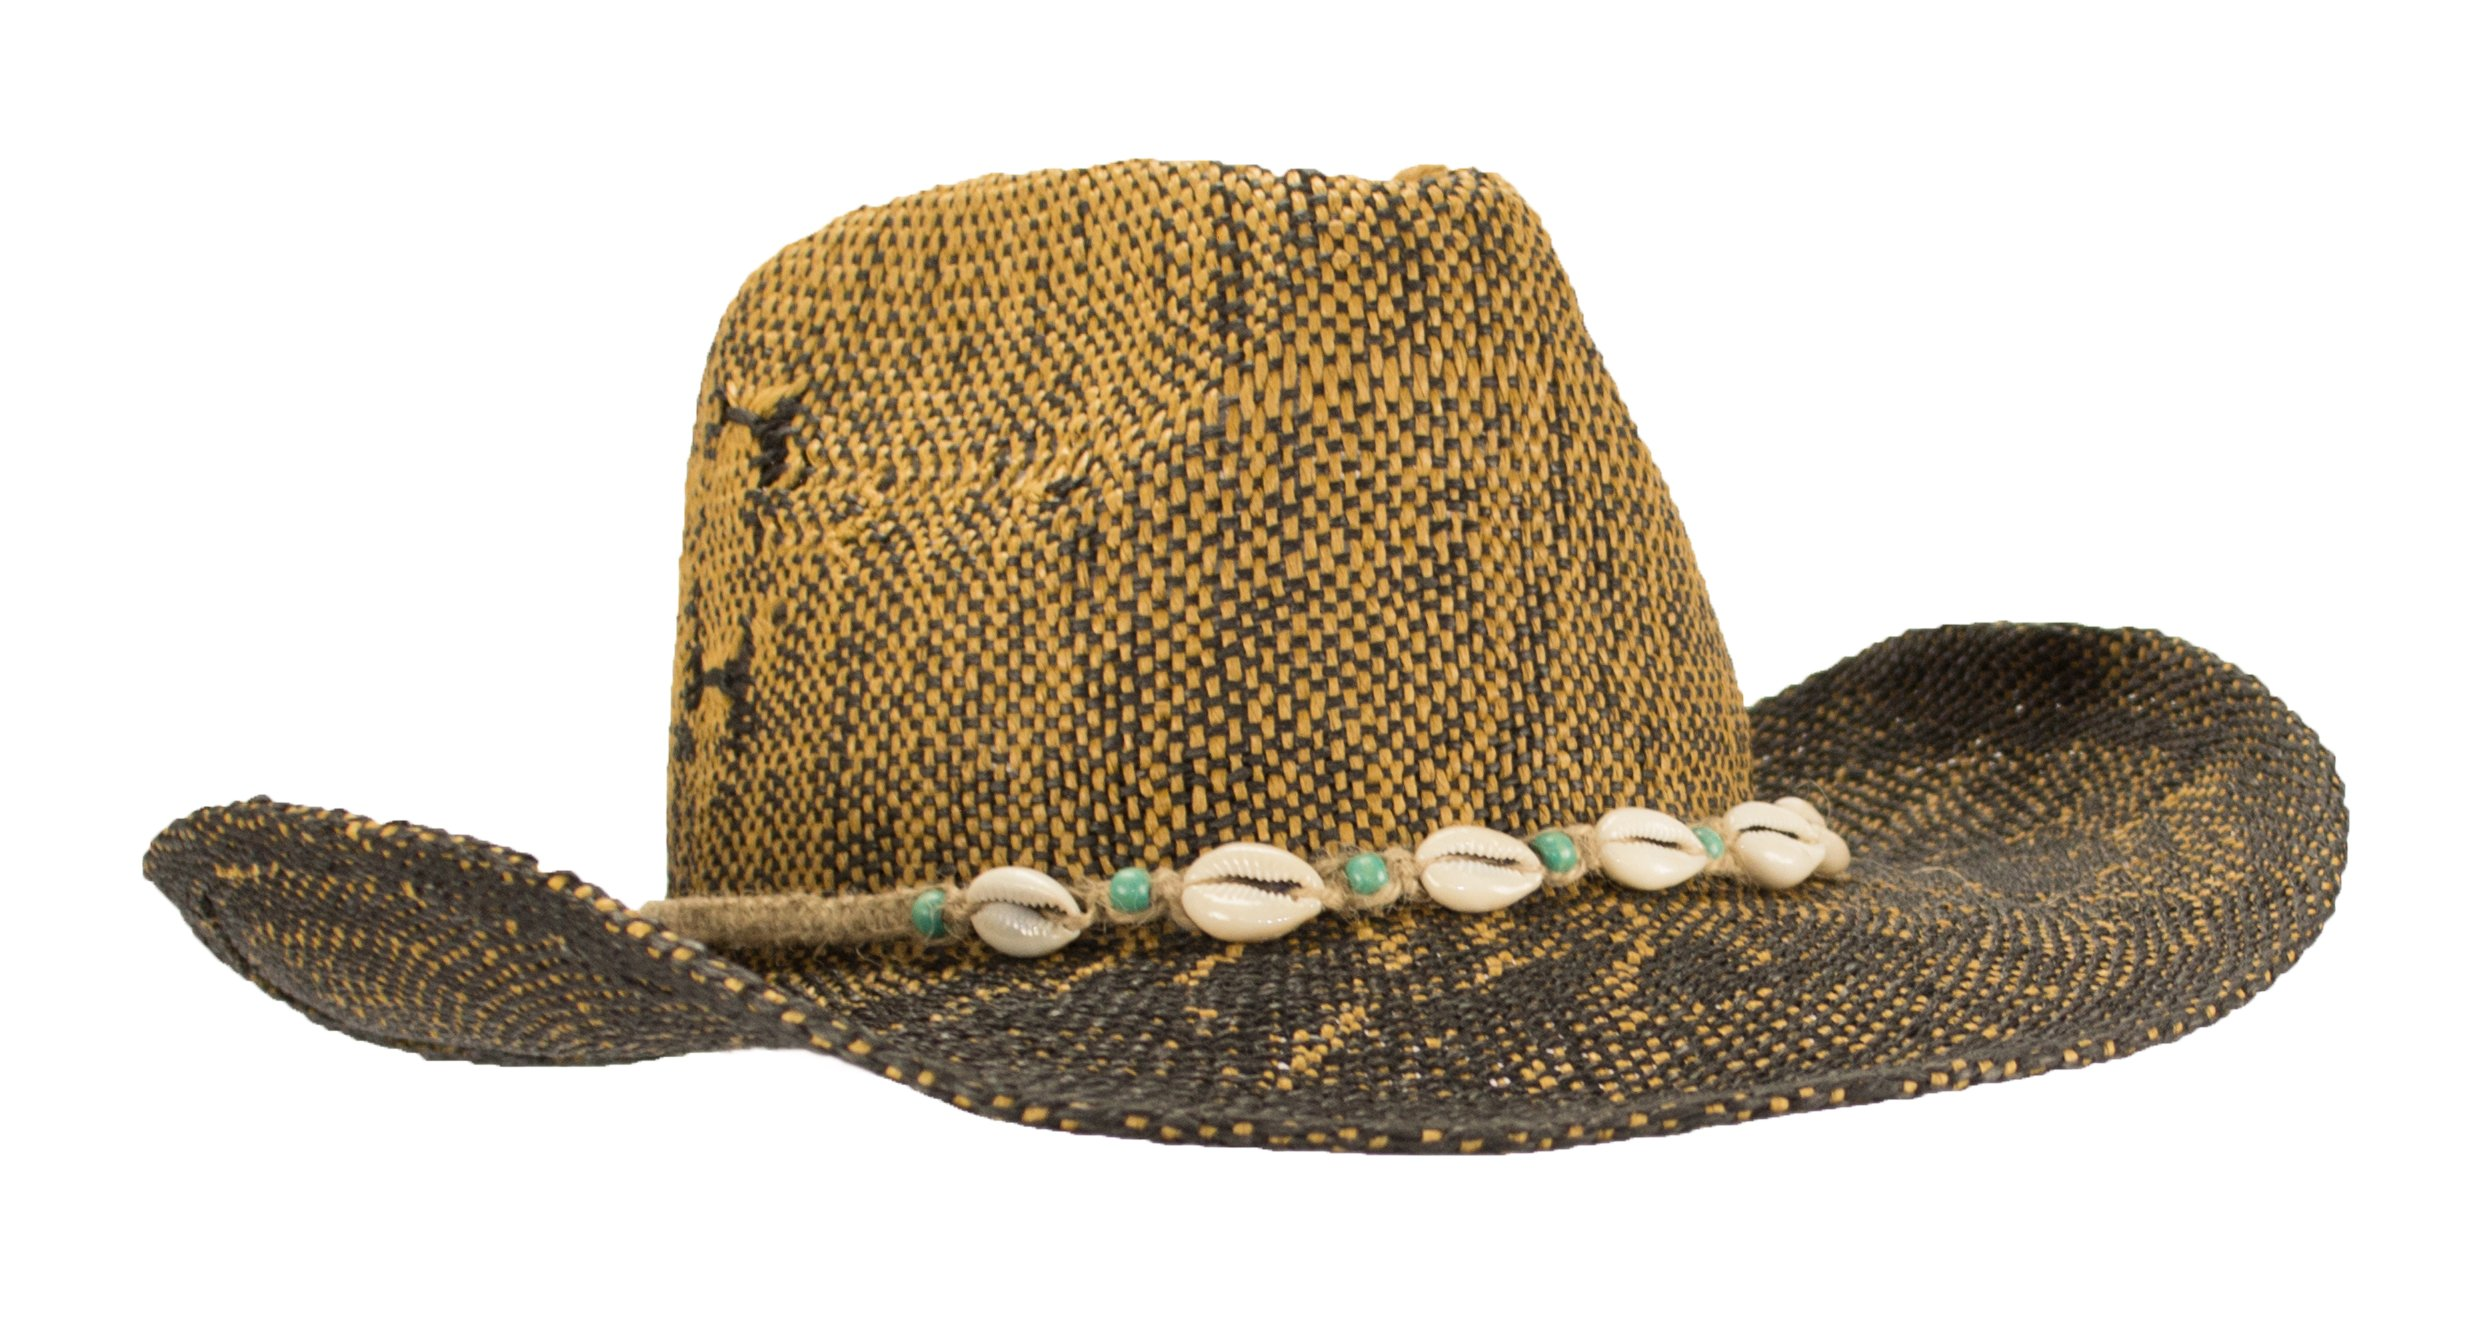 New Hand Woven Ombre Cowboy Cowgirl Hat With Beaded cowrie Shell hatband, UPF 50+ (Brown/Black)